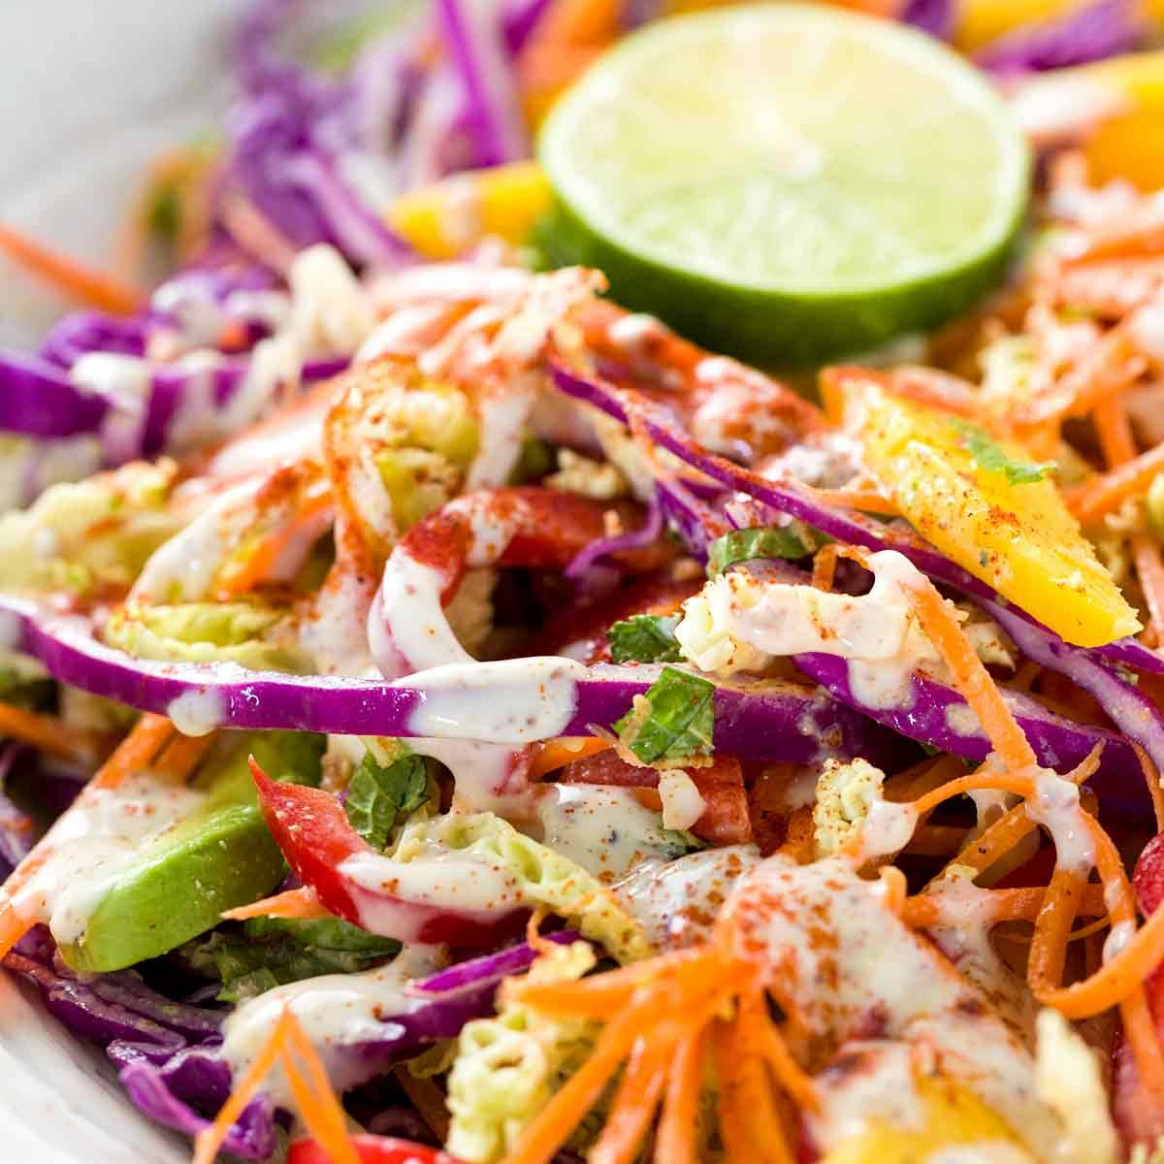 10 Best Healthy Coleslaw With Greek Yogurt Recipes - Healthy Recipes Yummly